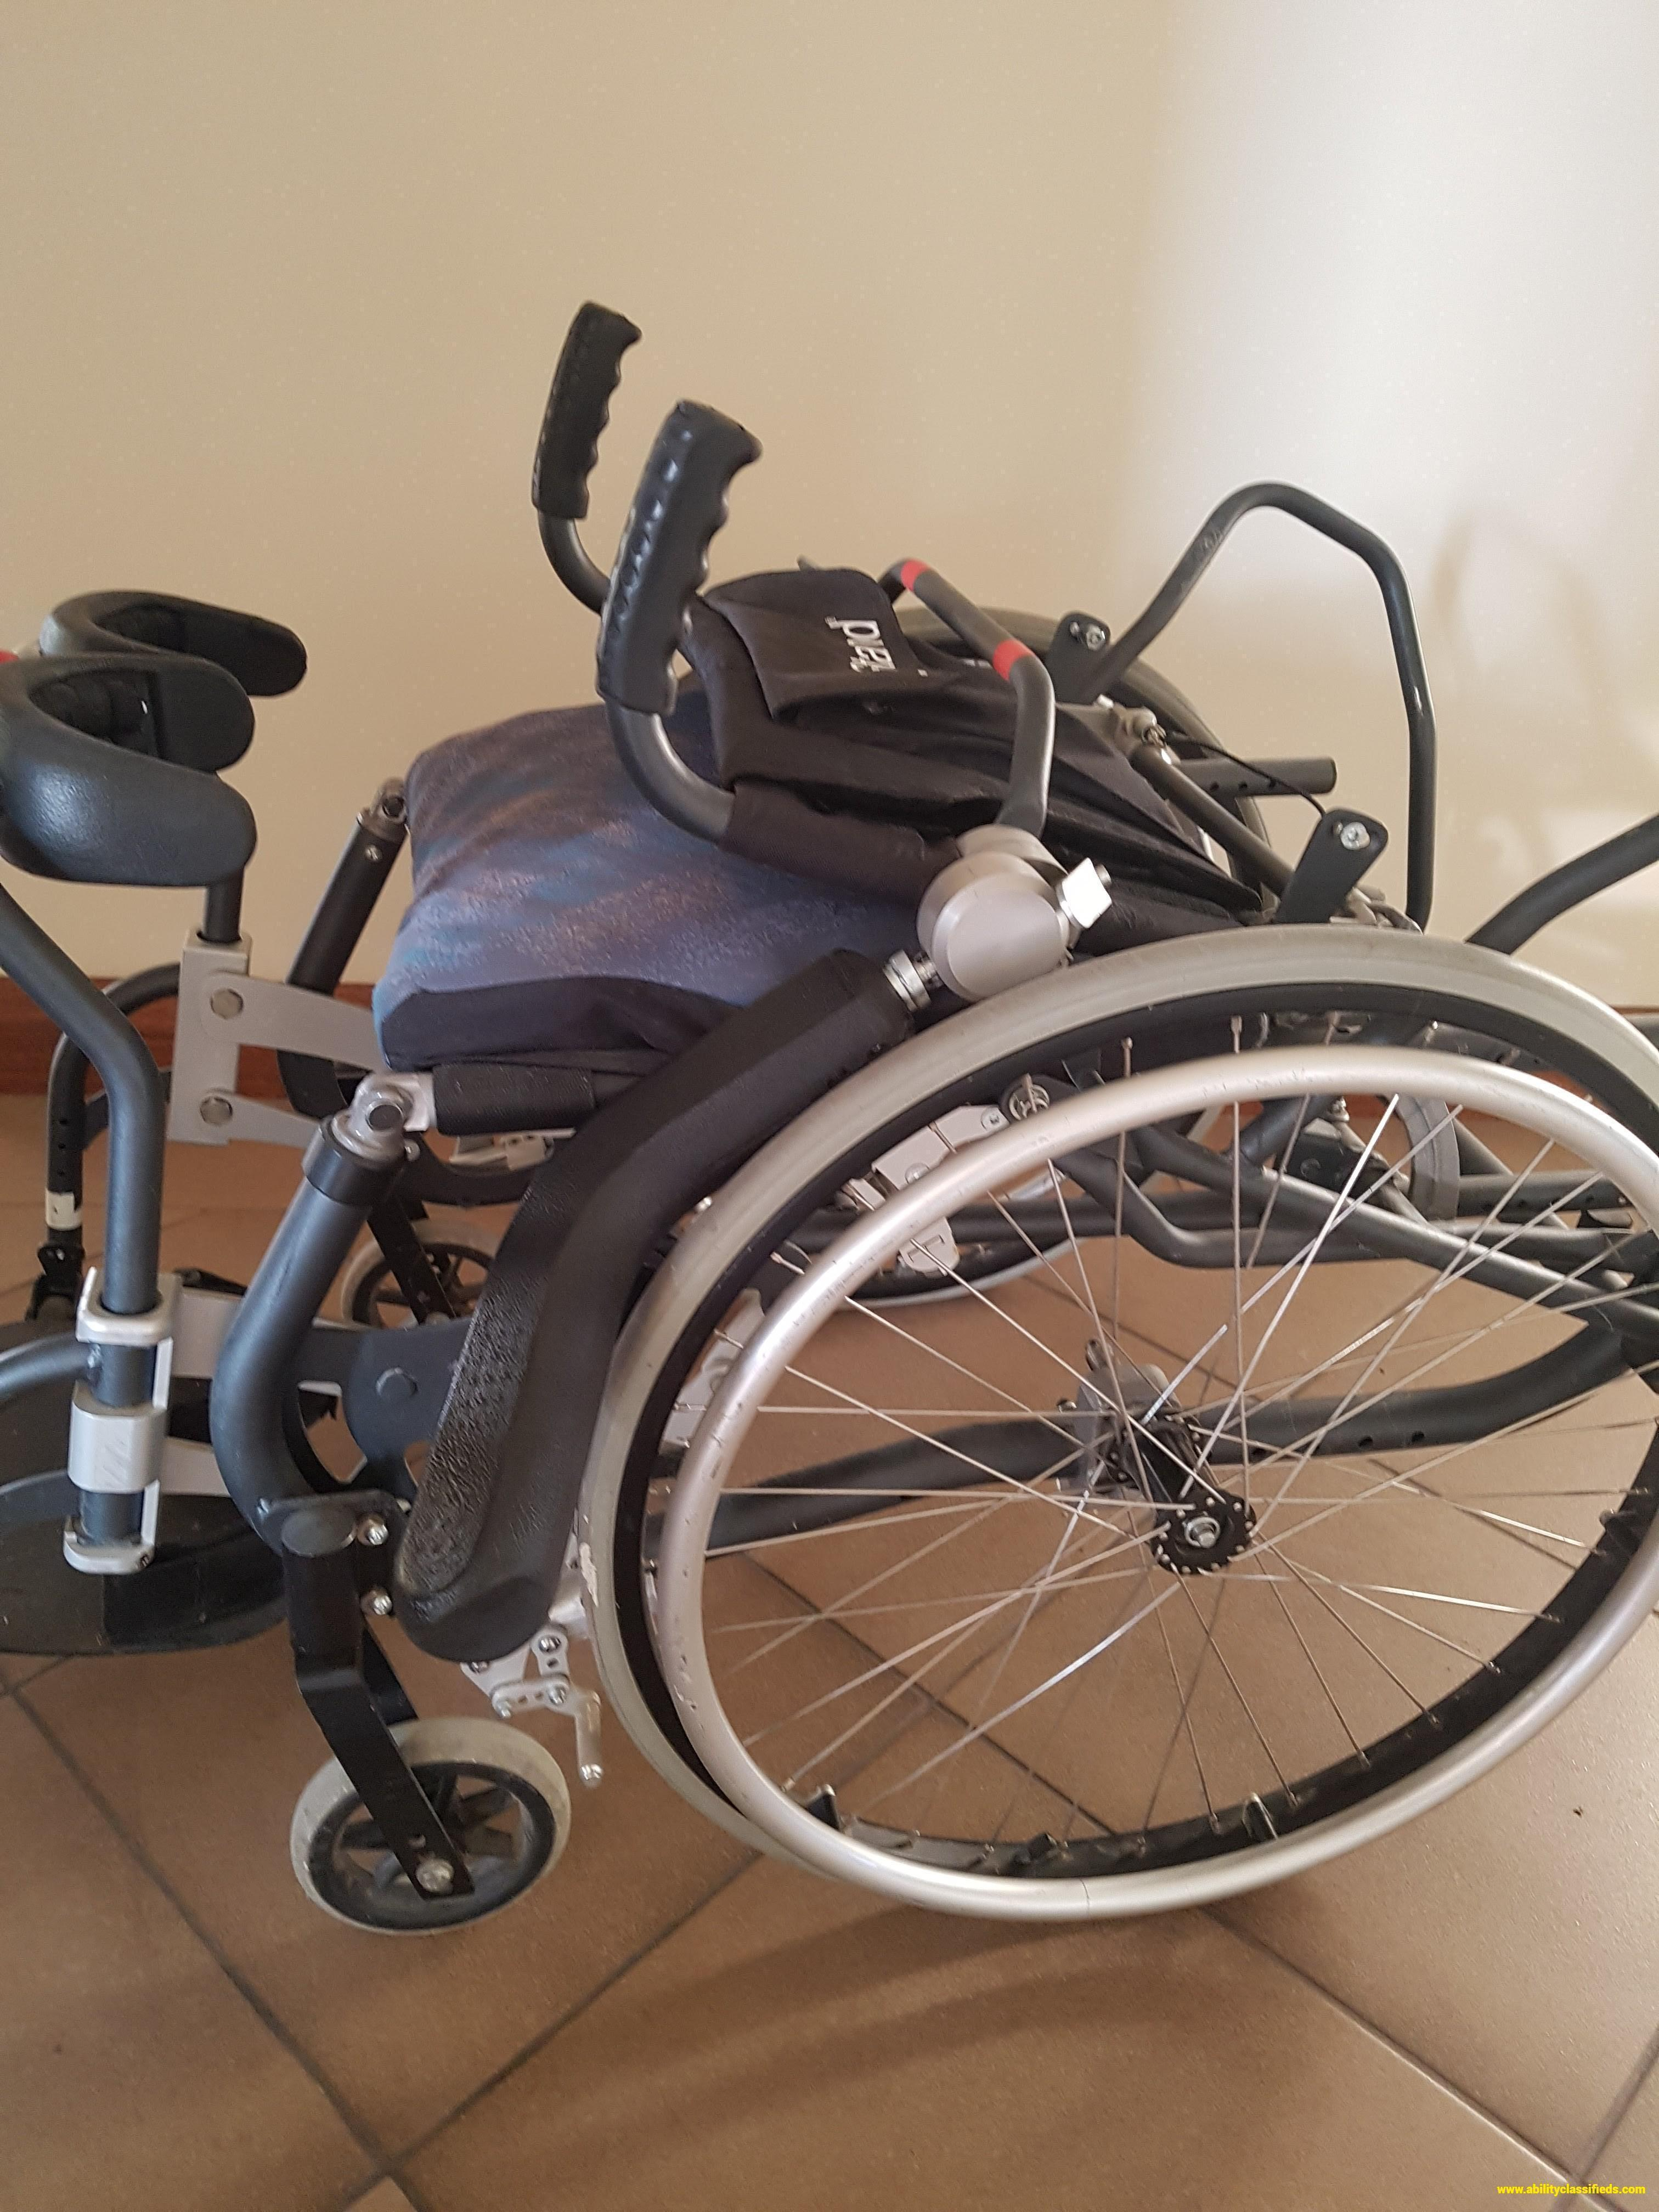 Lifestand Manual Stand-Up Wheelchair - Gas Strut Assisted